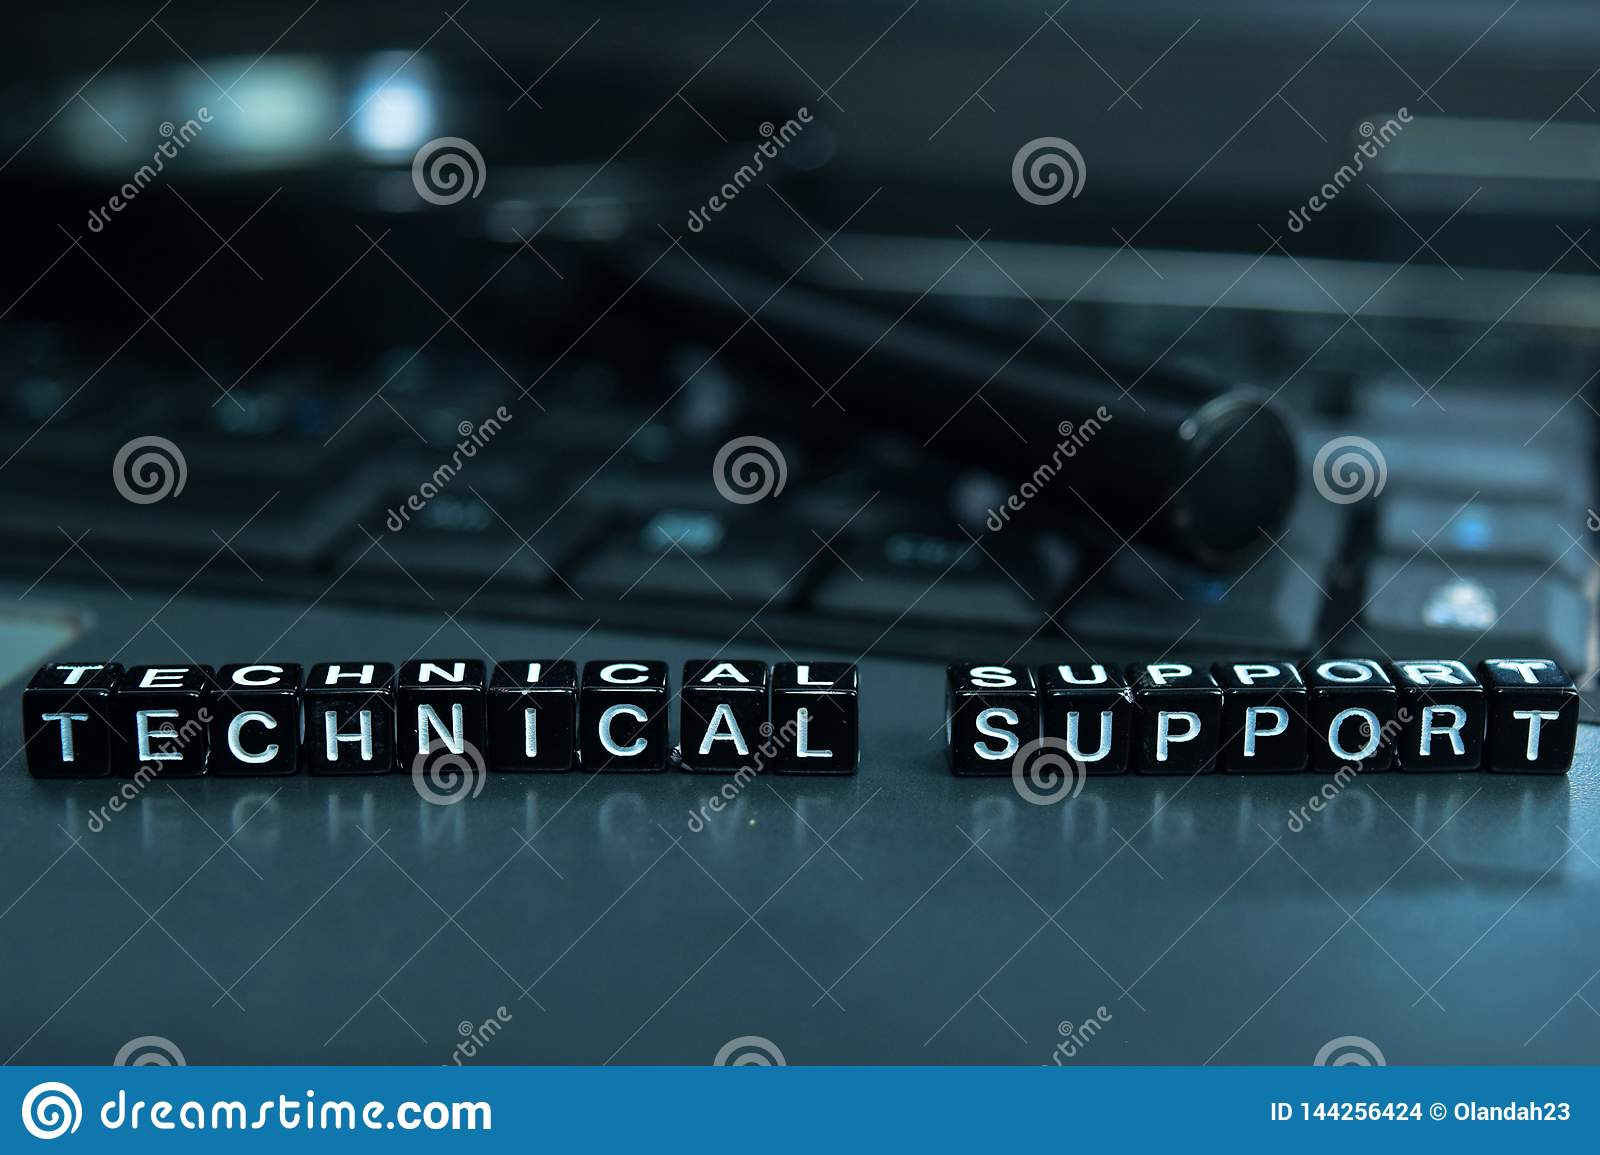 Technical Support text wooden blocks in laptop background. Business and technology concept